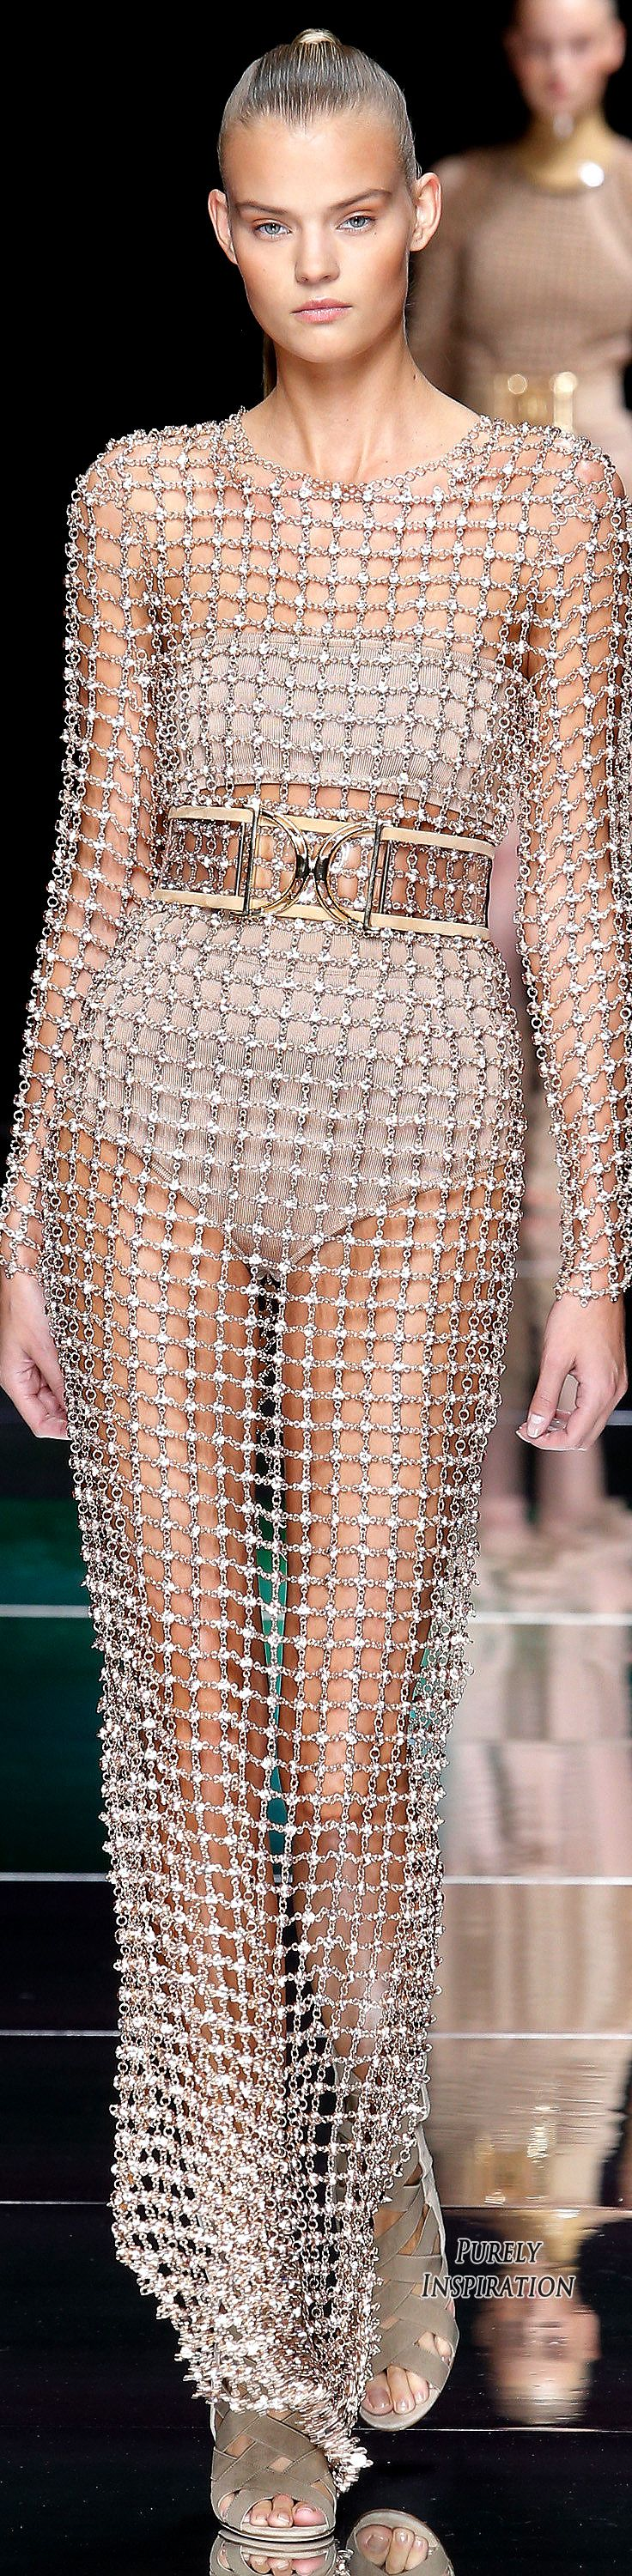 Pinterest: emmaknowles6 Balmain SS2016 Women's Fashion RTW | Purely Inspiration